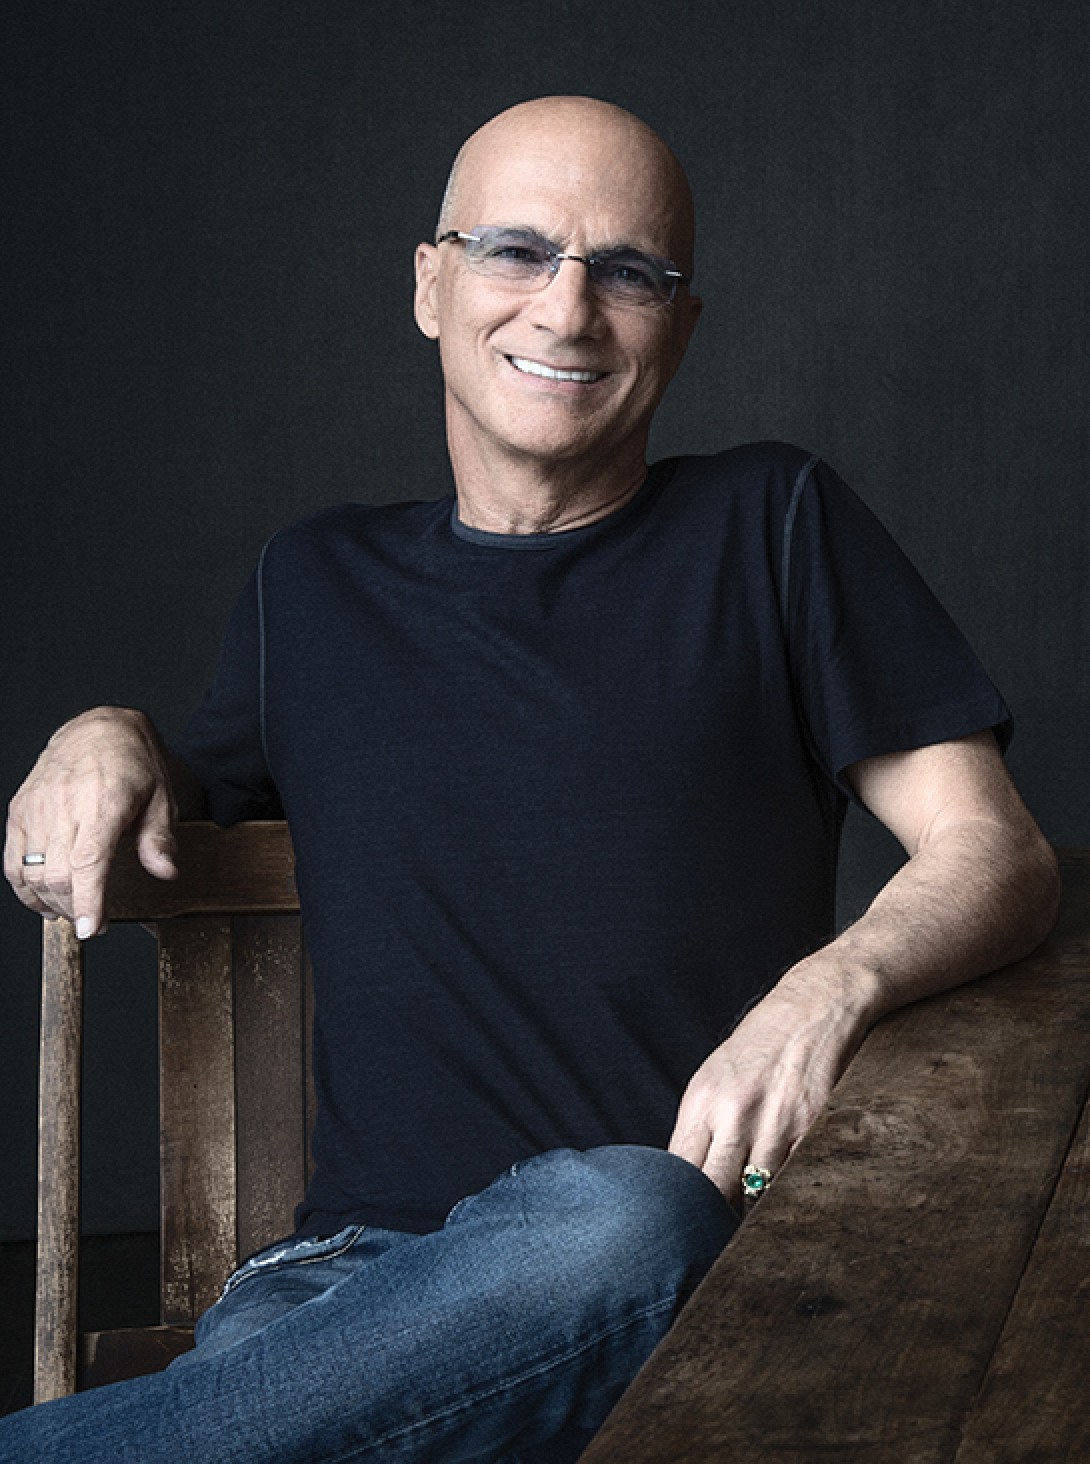 photo image Jimmy Iovine Says Apple Music Would Have '400 Million' Listeners If It Had a Free Version Like Spotify